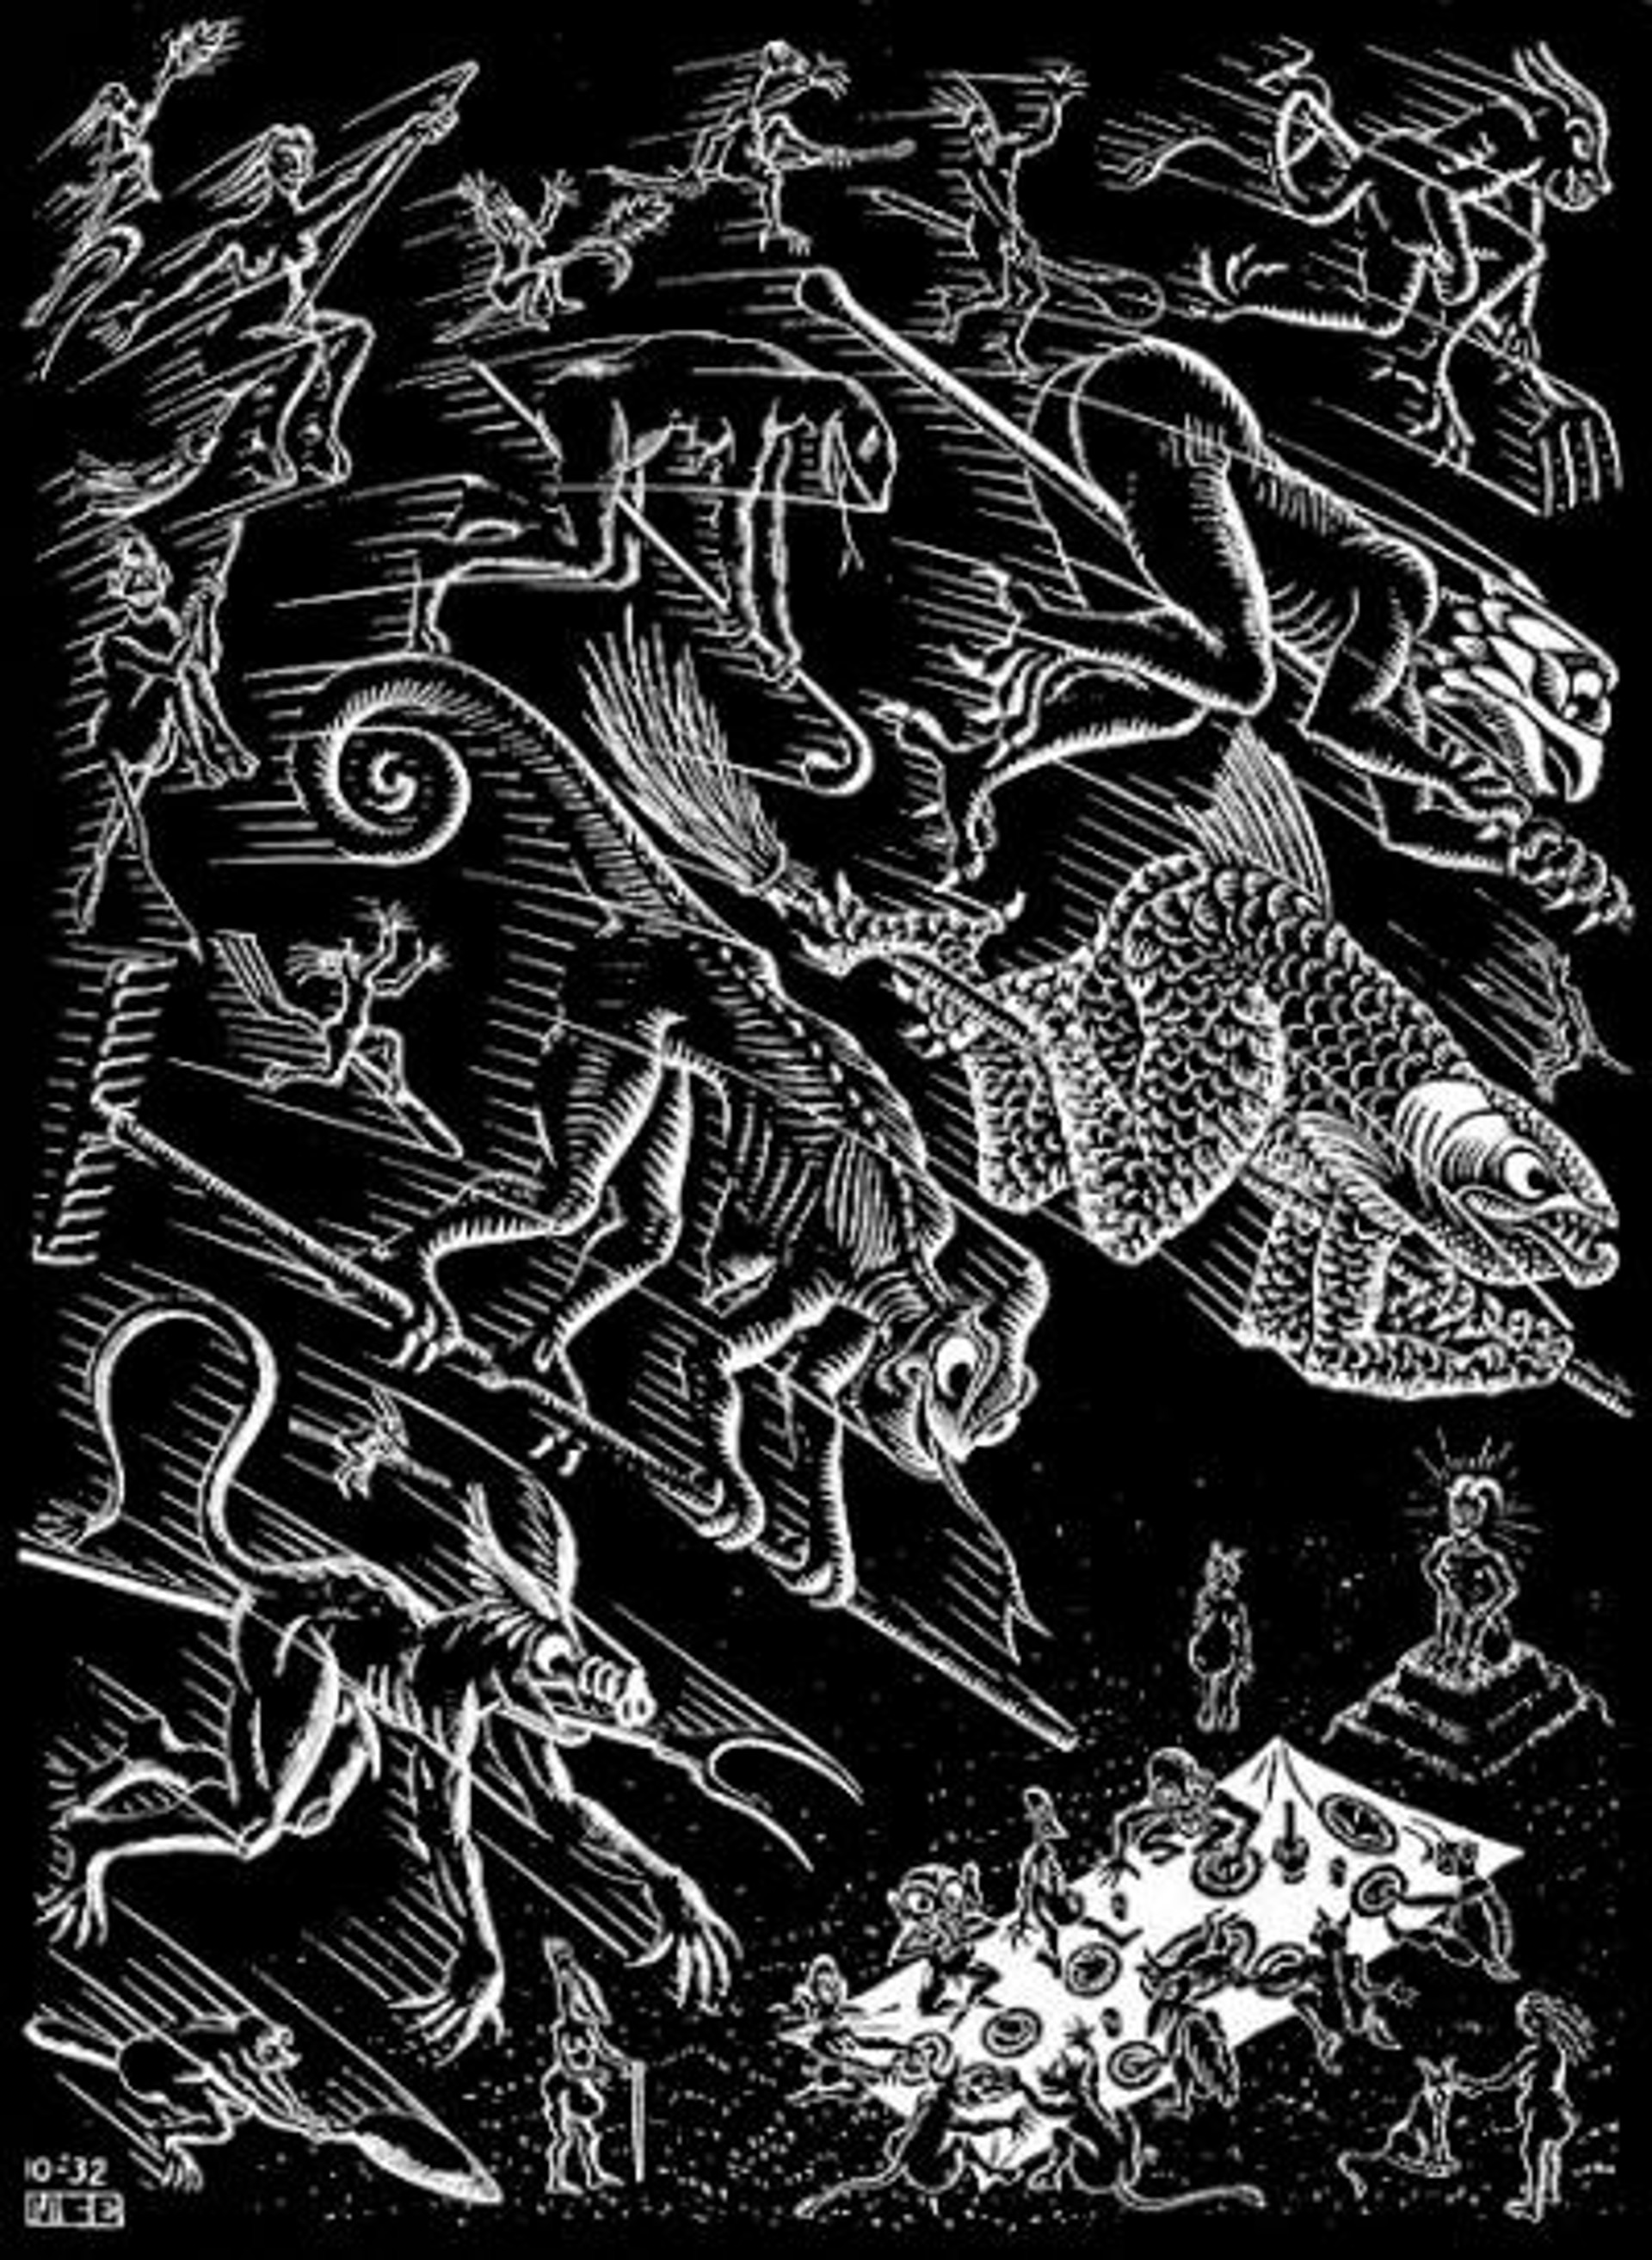 Scholastica (Last Night) by M.C. Escher